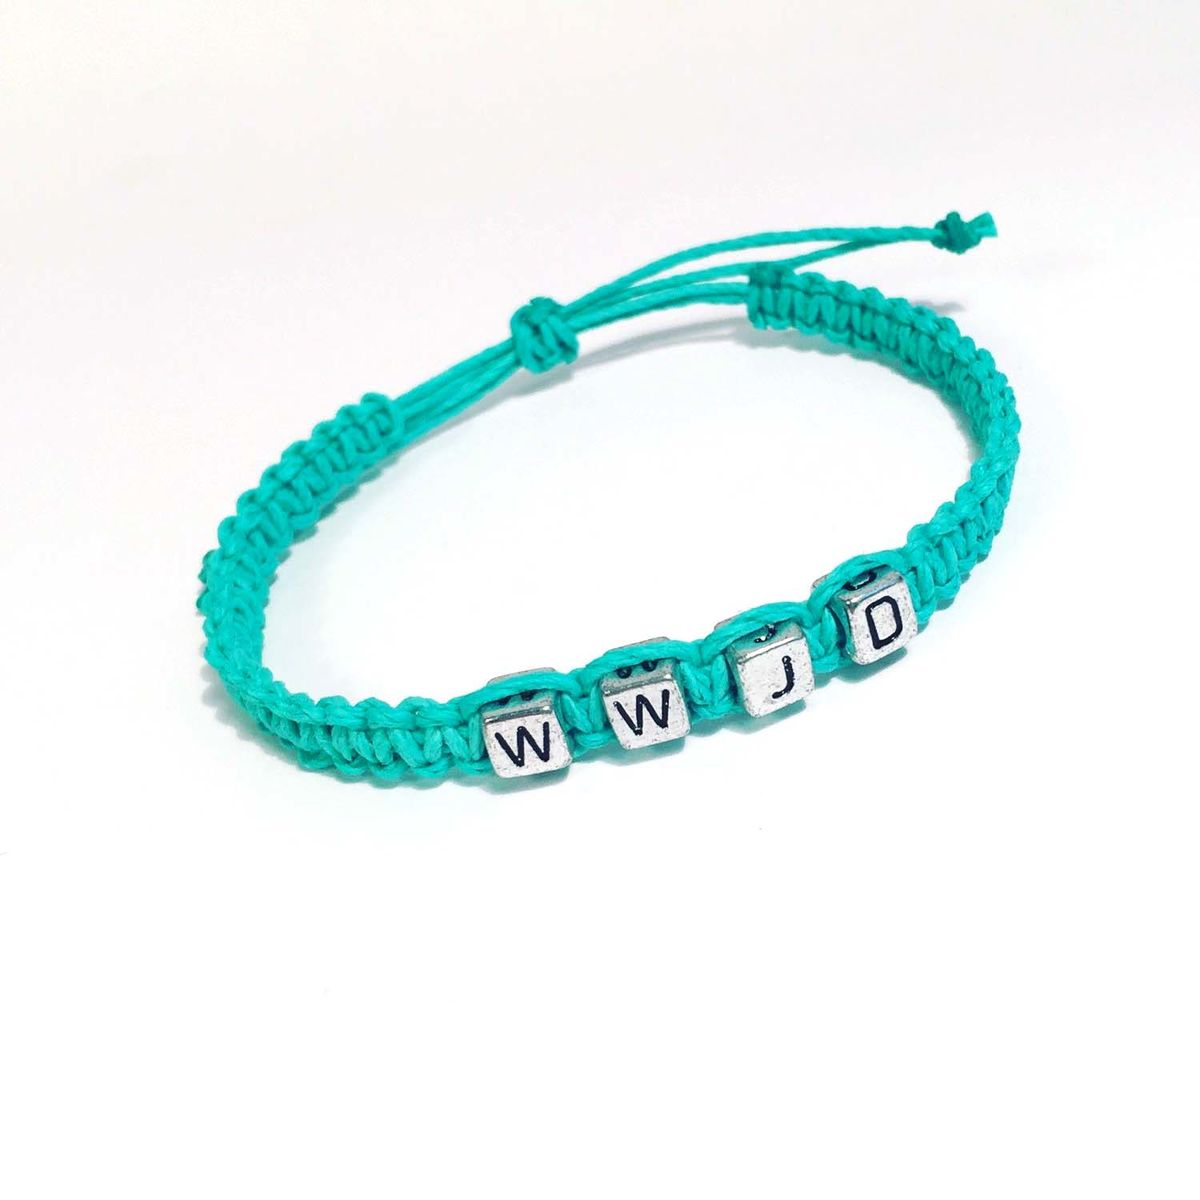 WWJD Hemp Bracelet, Adjustable mint bracelet, Single Hemp Bracelet - product images  of